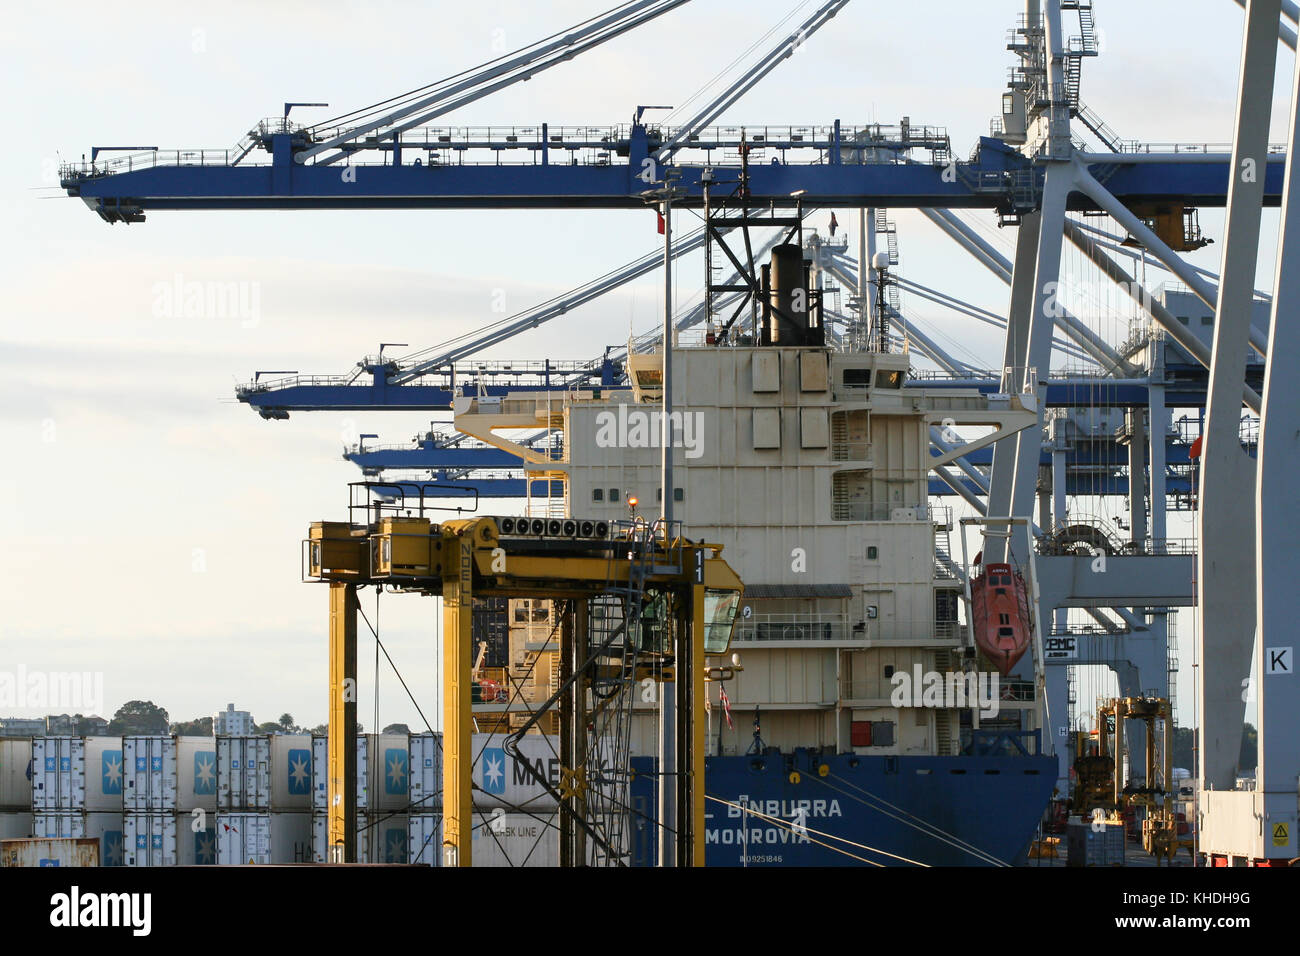 AUCKLAND, NEW ZEALAND - 17th APRIL 2012: Vessel, wheeled cranes and stack of containers at Auckland sea port. - Stock Image